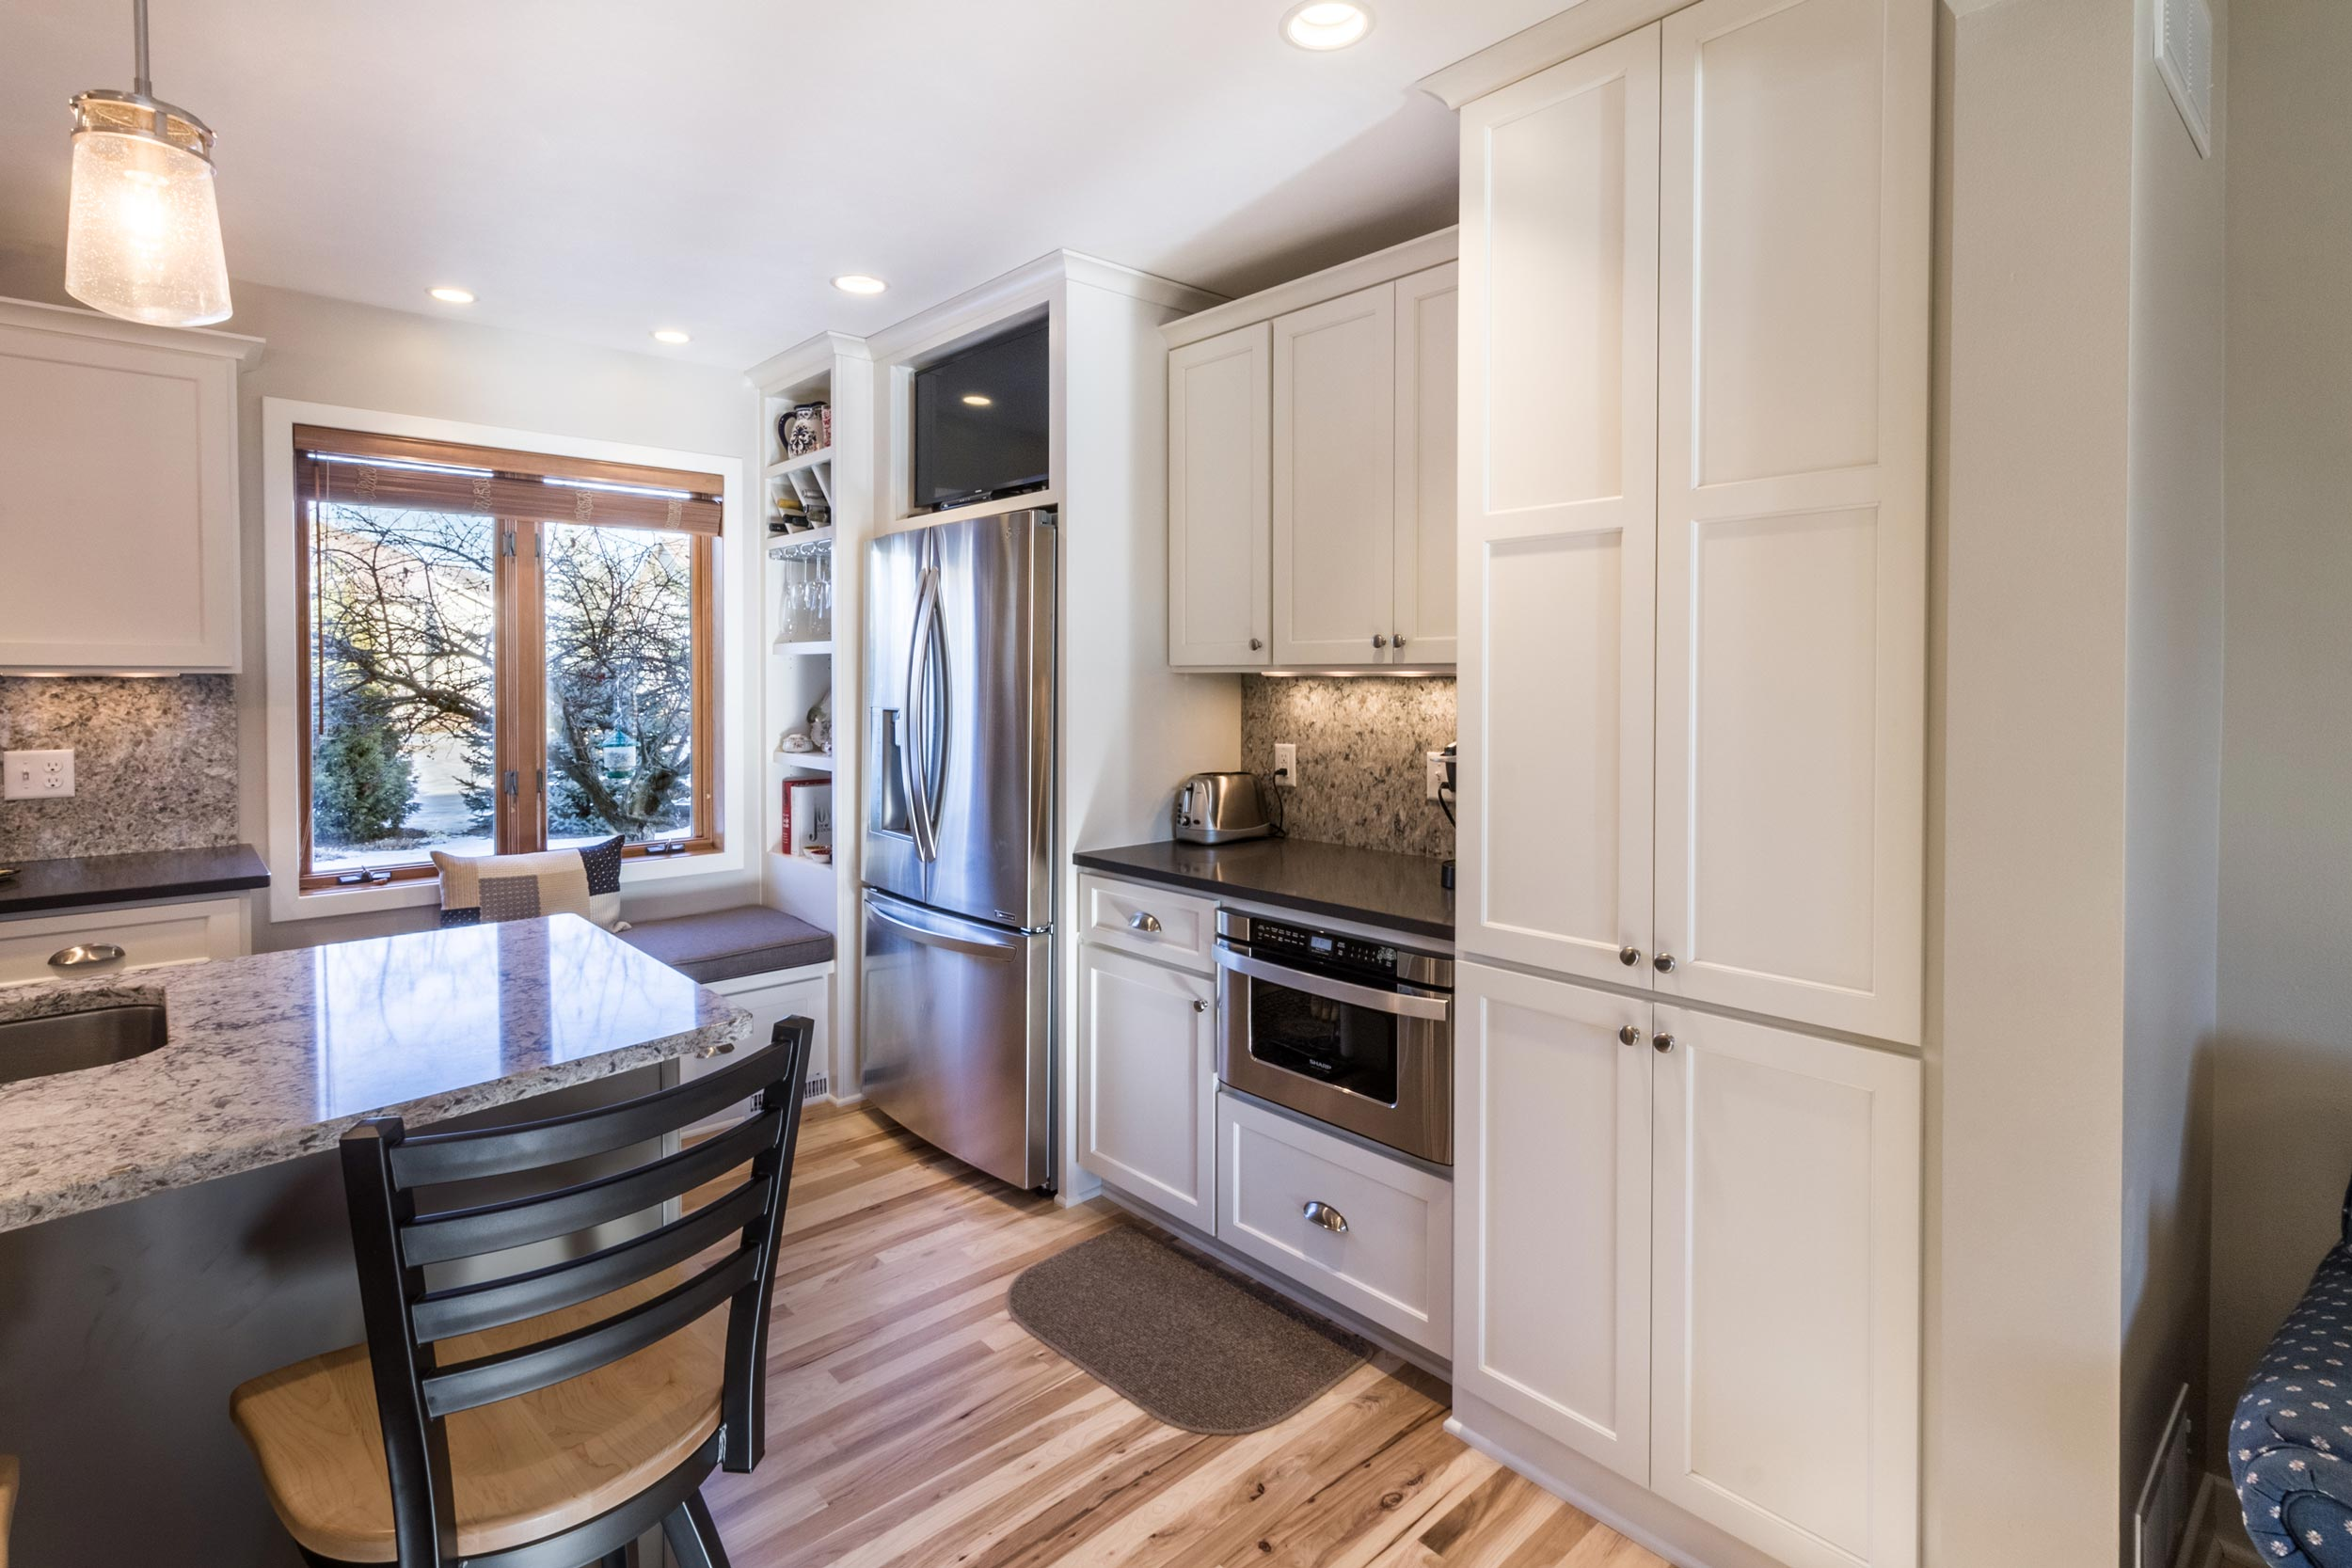 Kitchen Pantry Design Ideas To Consider When Remodeling ...